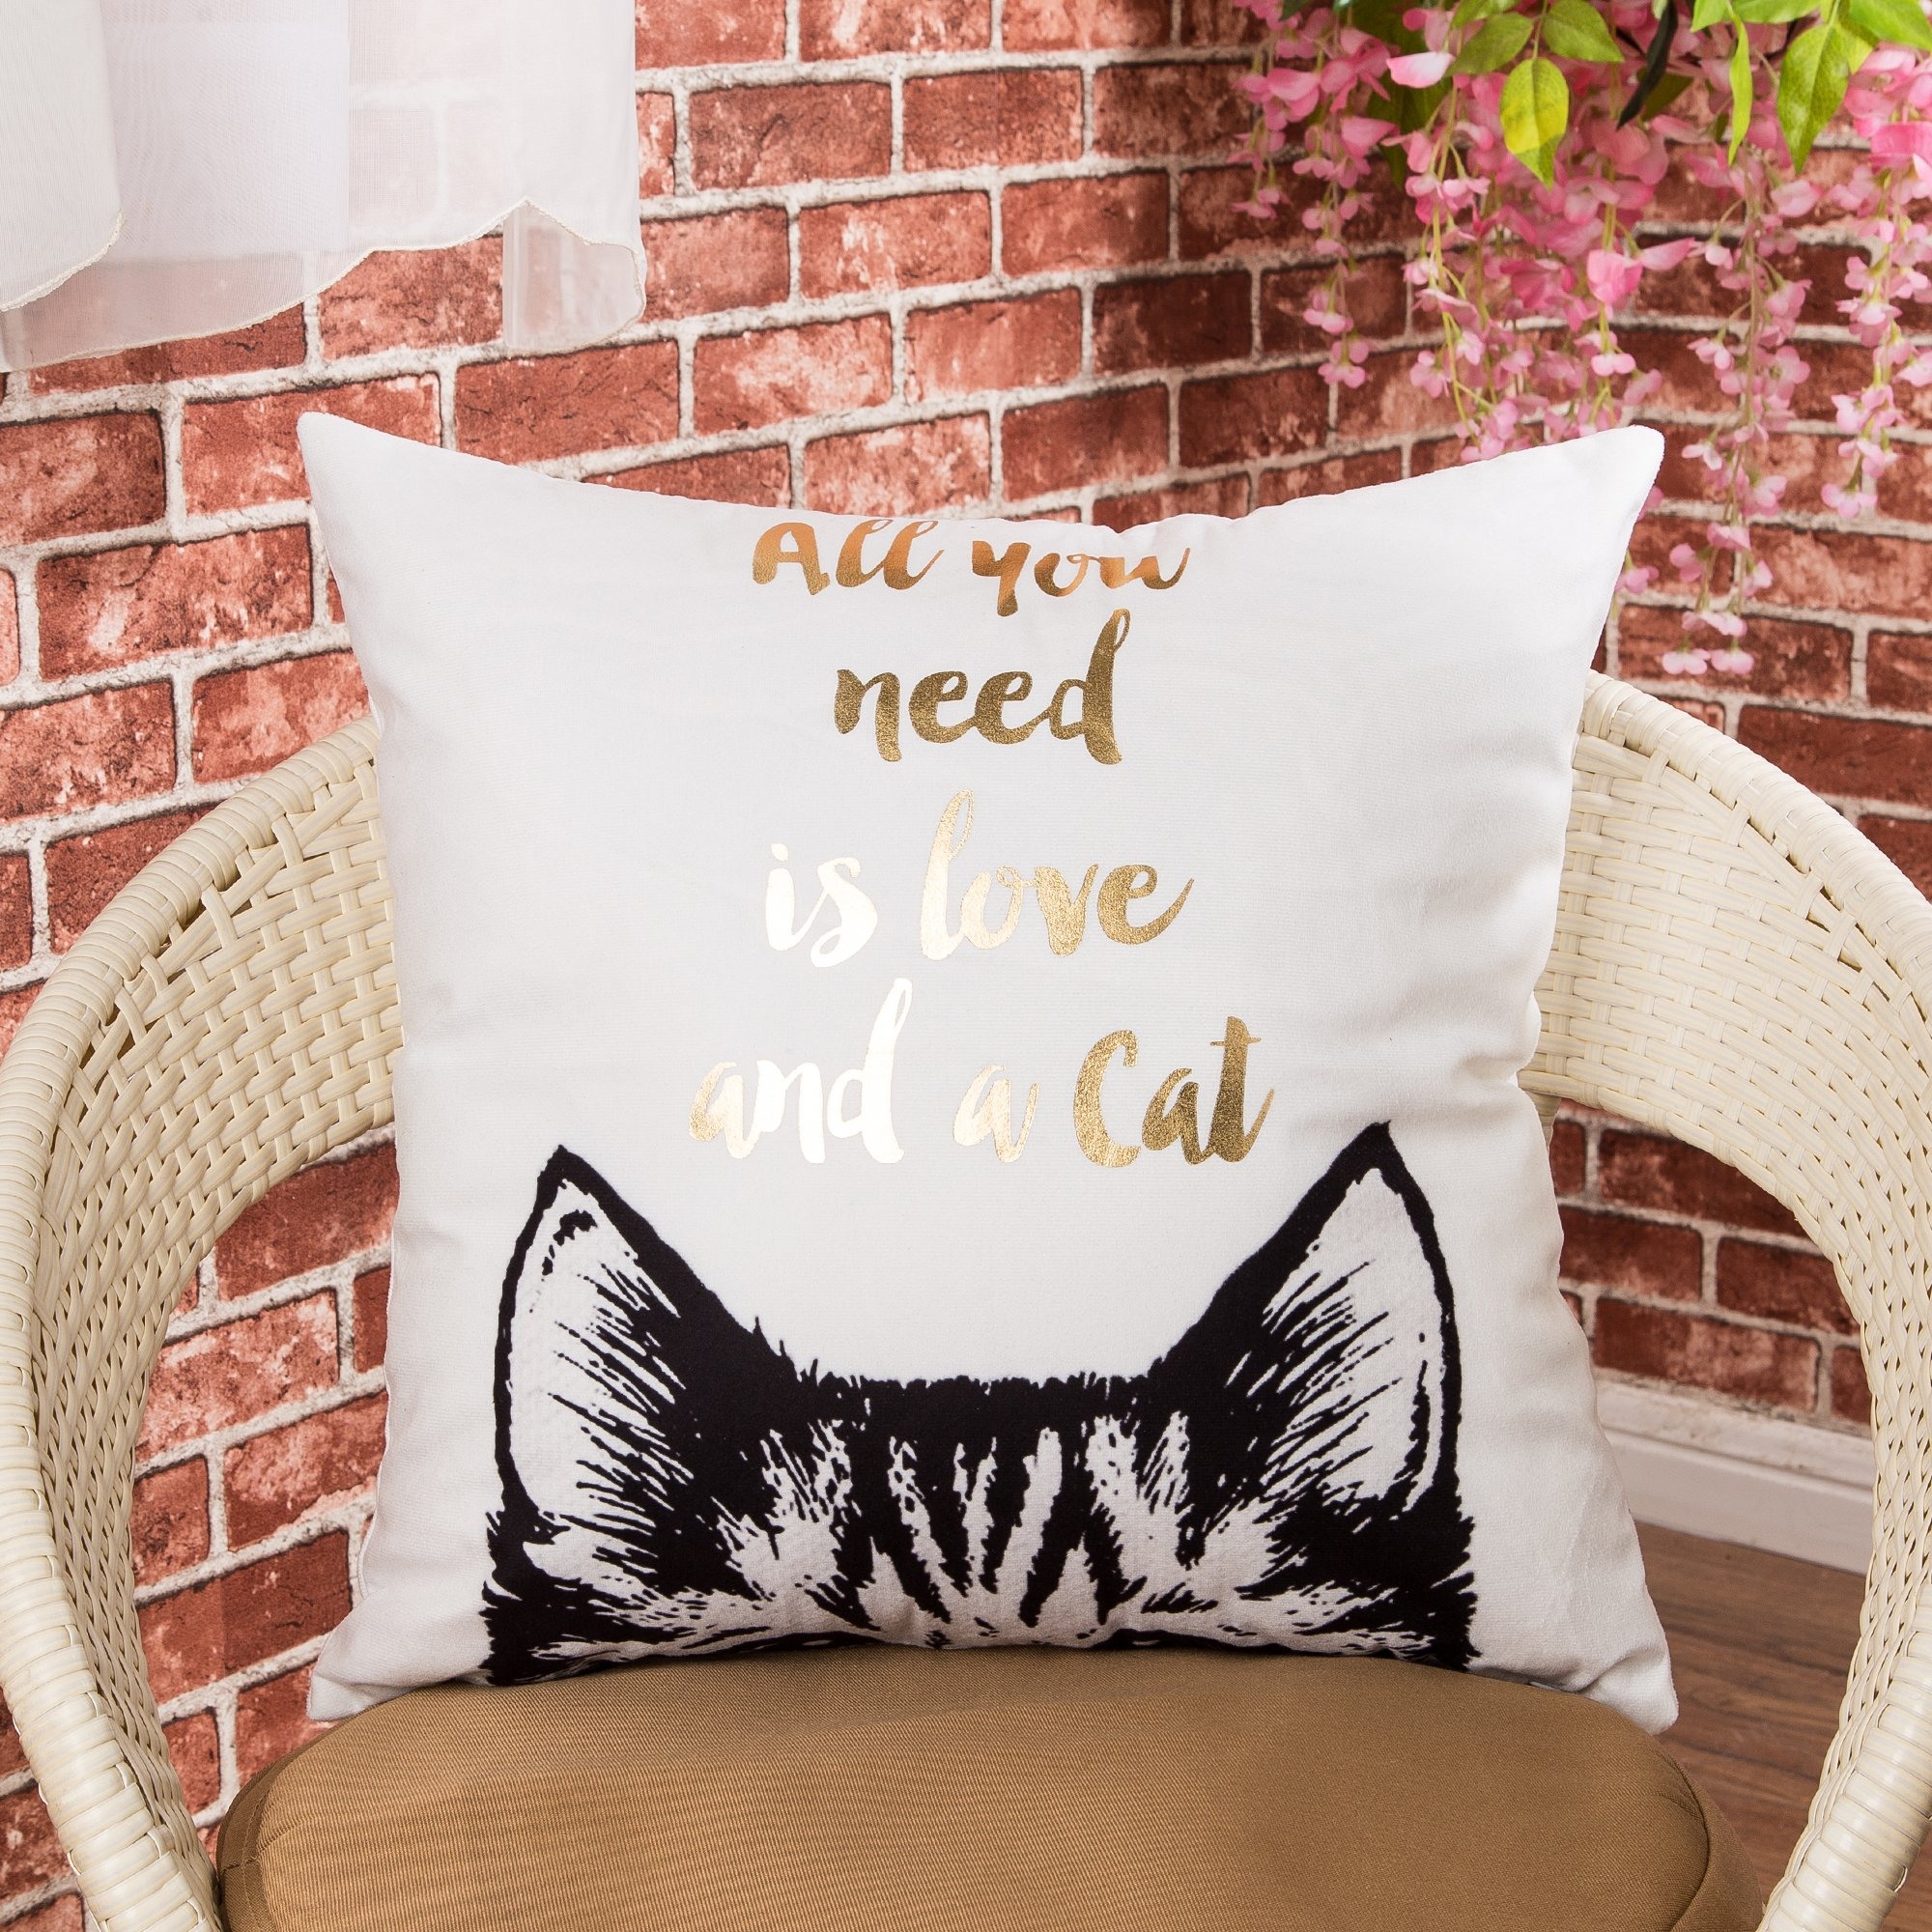 Fjfz Gold Foil Print All You Need is Love and a Cat, Cute Cat Kitty Kitten lover Inspirational Quote Cotton Linen Home Decorative Throw Pillow Case Cushion Cover for Sofa Couch, 18'' x 18''